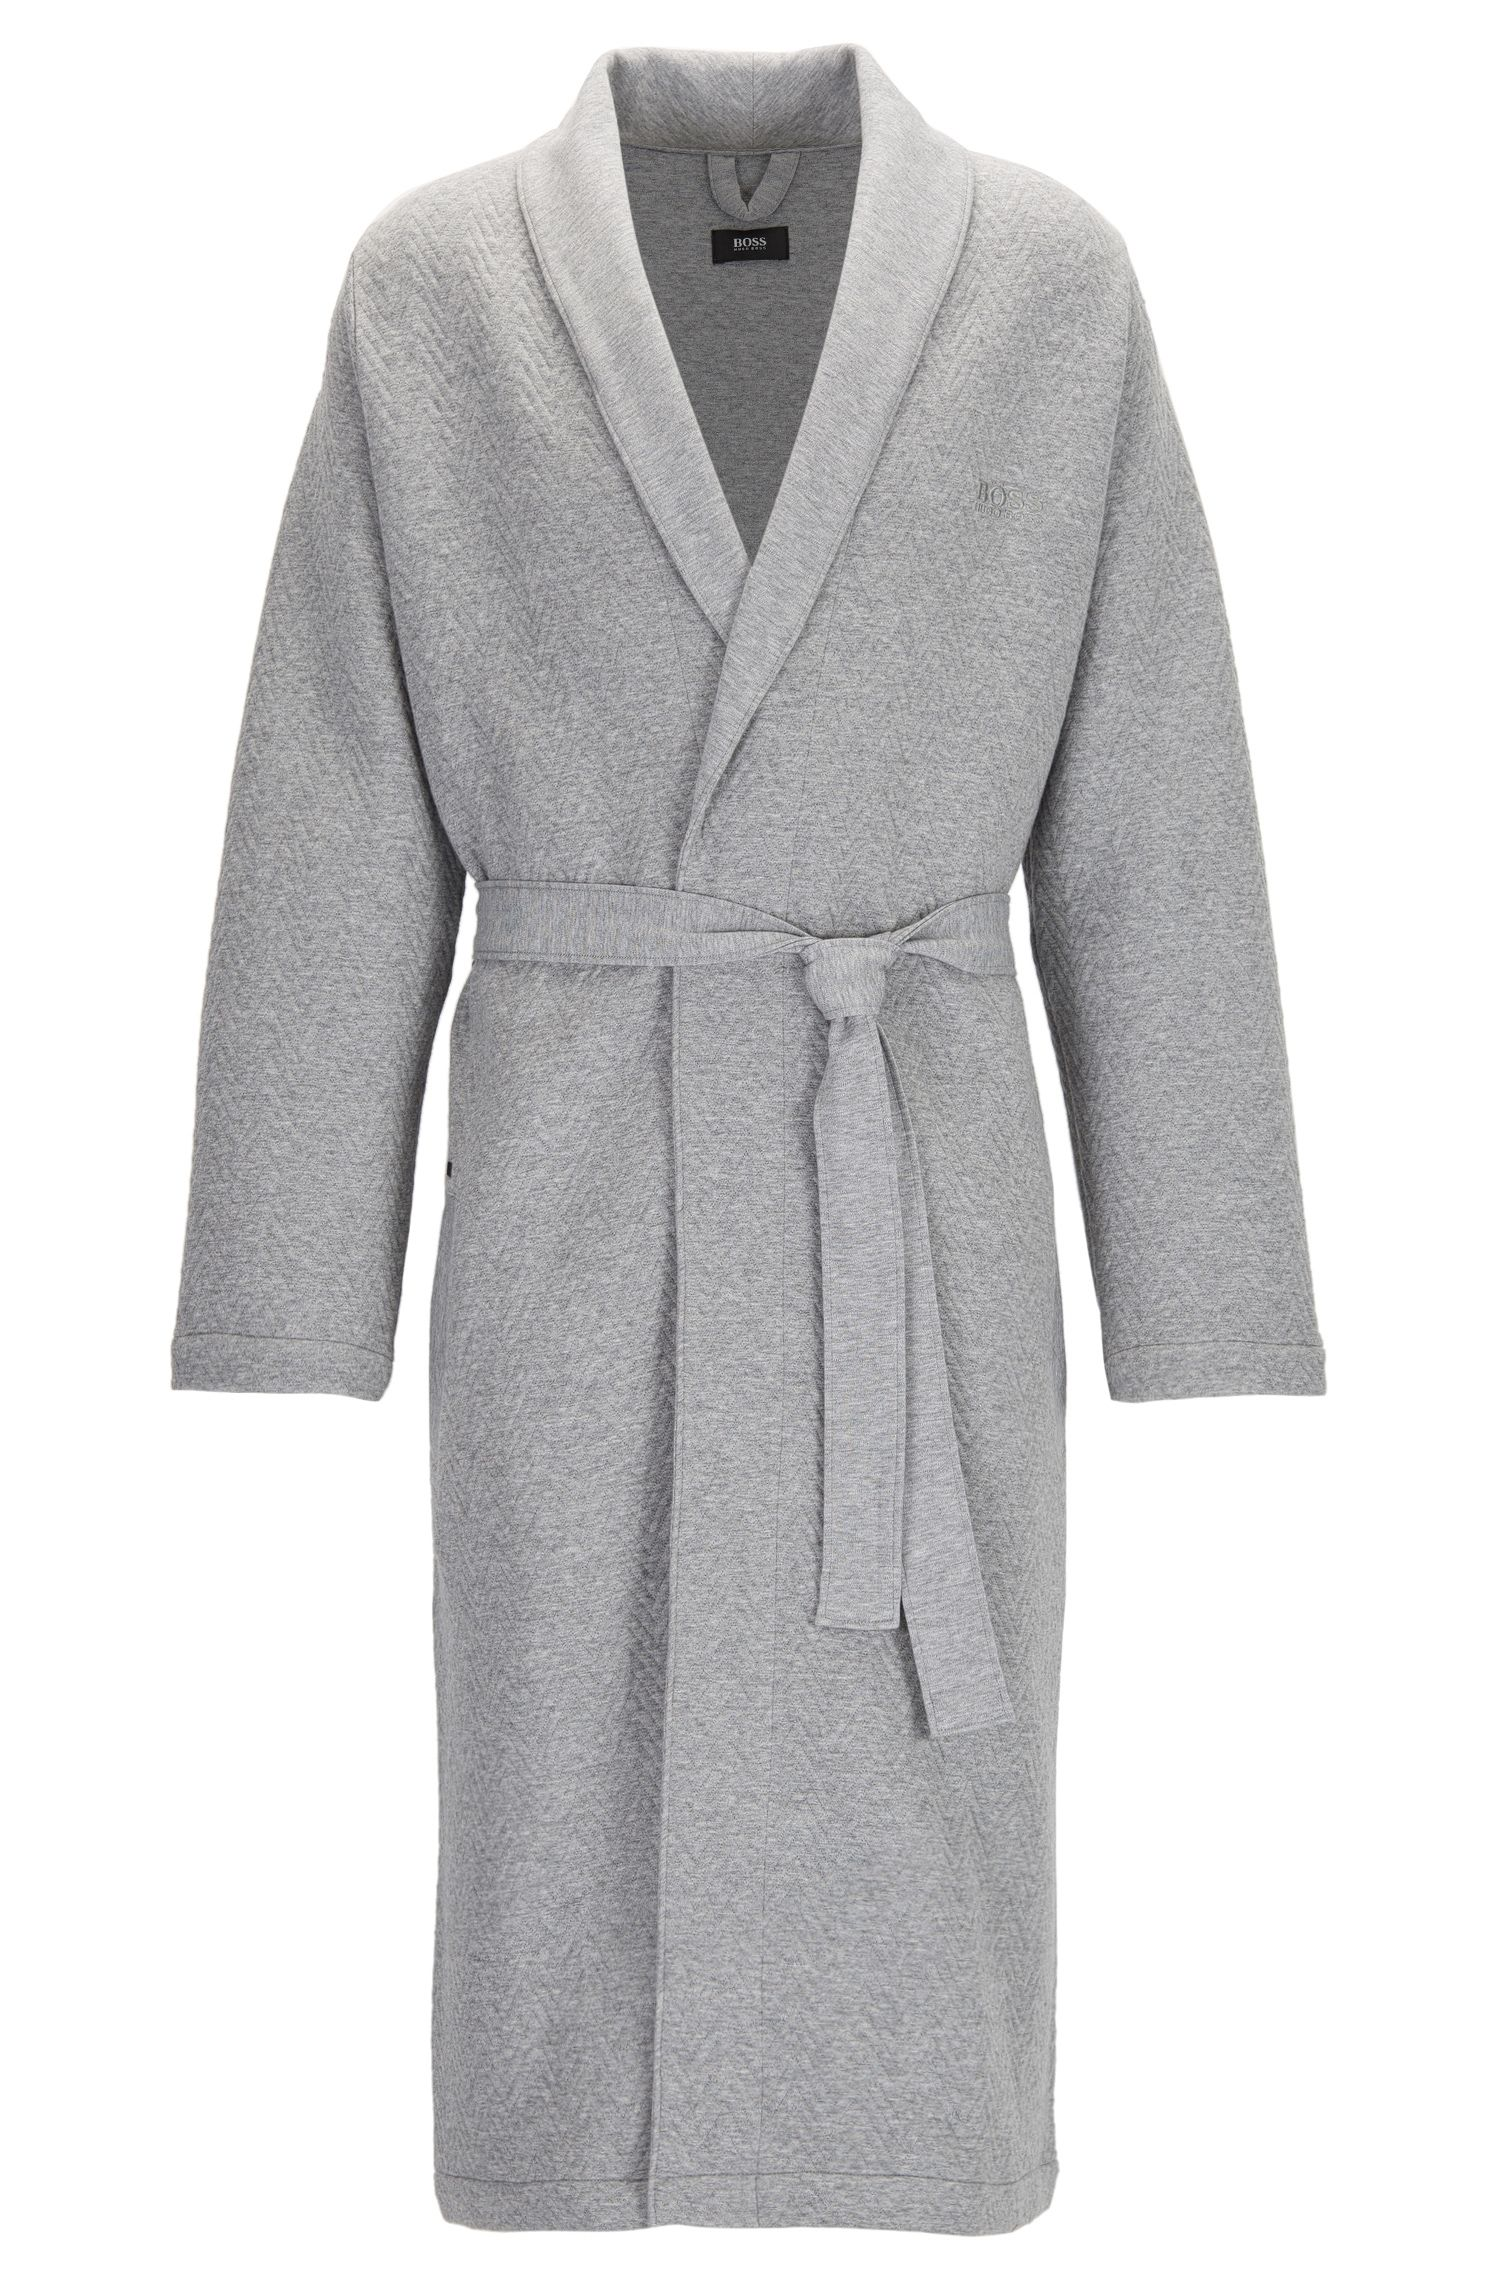 Herringbone-Knit Cotton Robe | Contemporary Robe